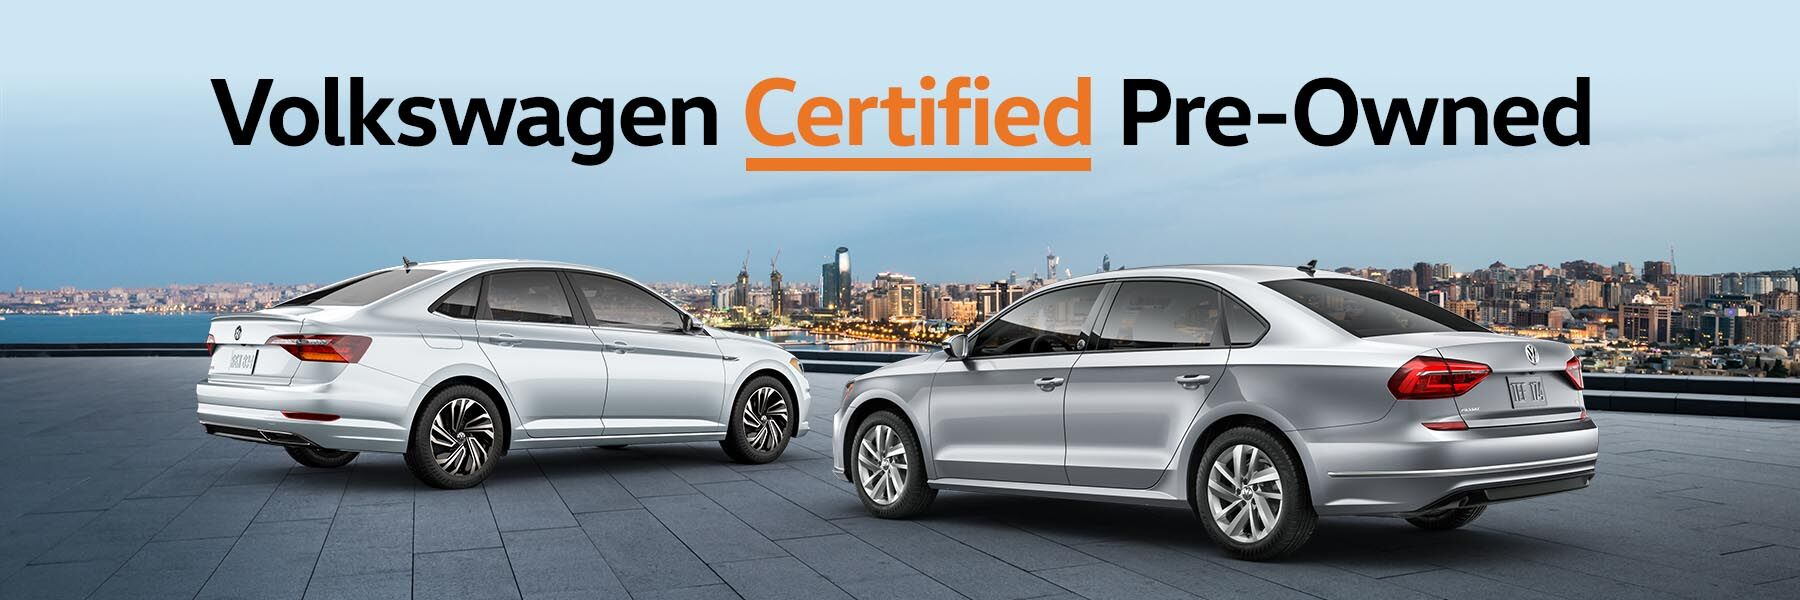 Volkswagen Certified Pre-Owned in Normal, IL